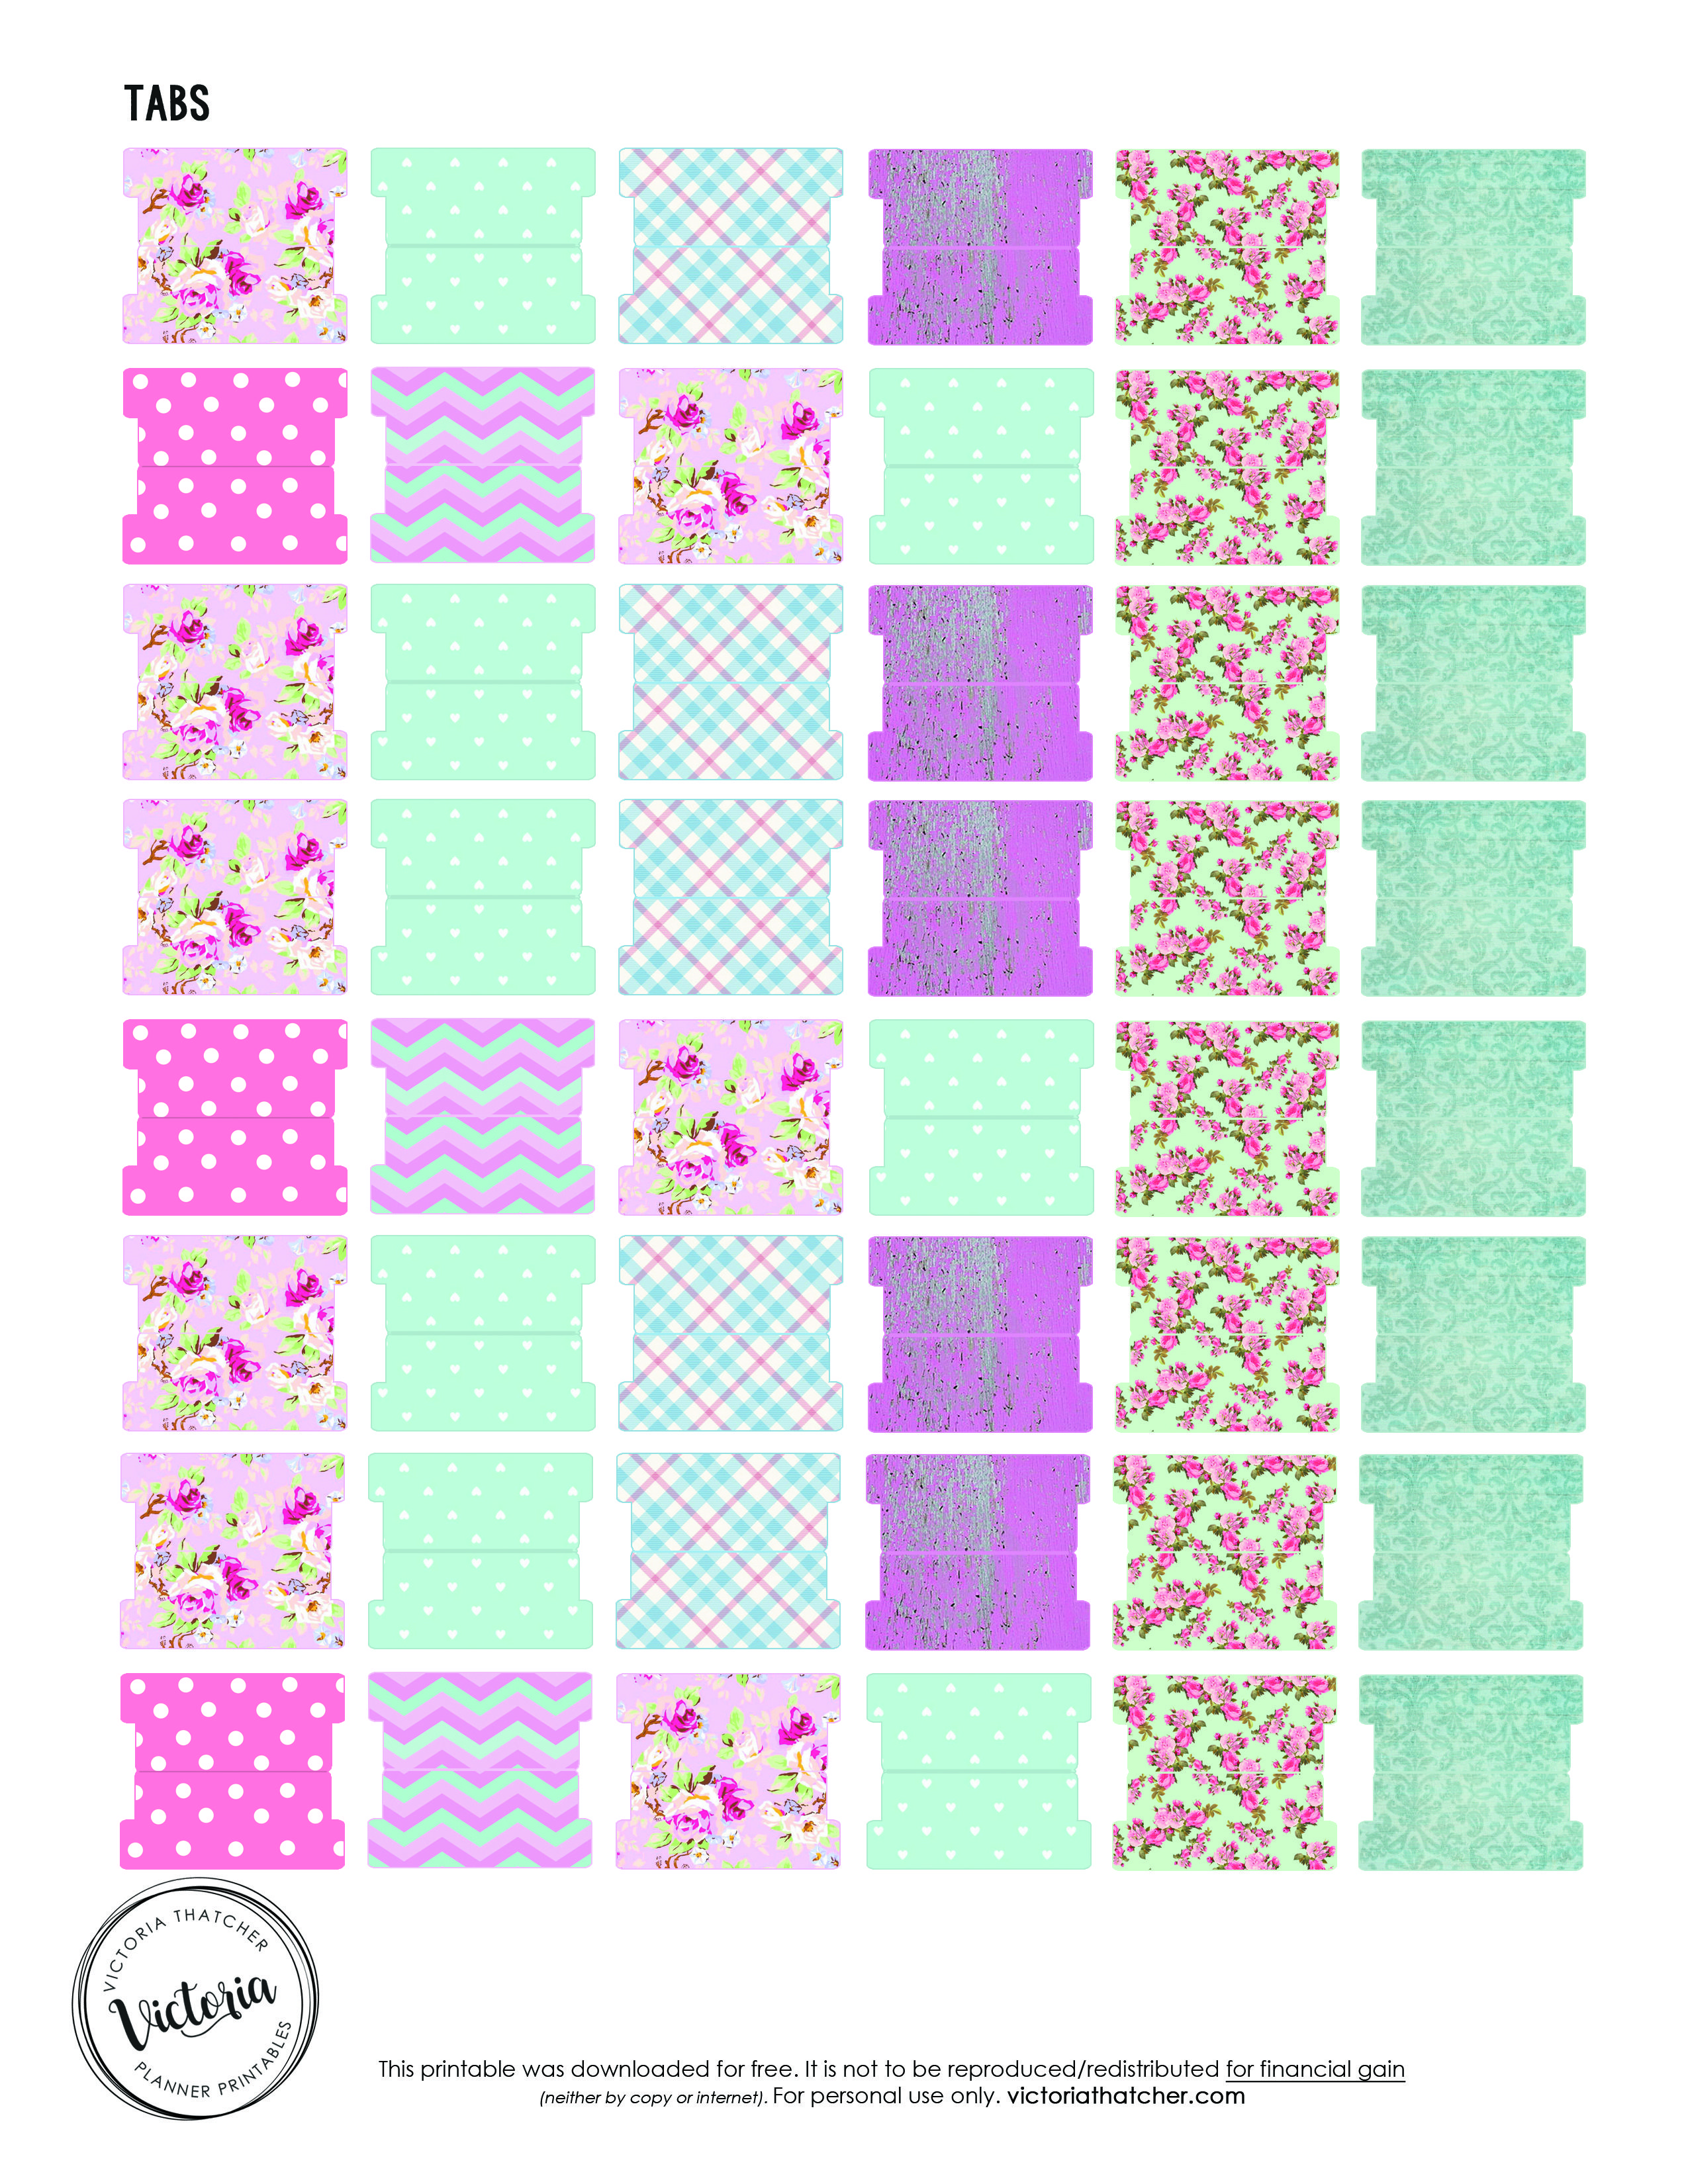 It's just an image of Crush Divider Tabs Printable